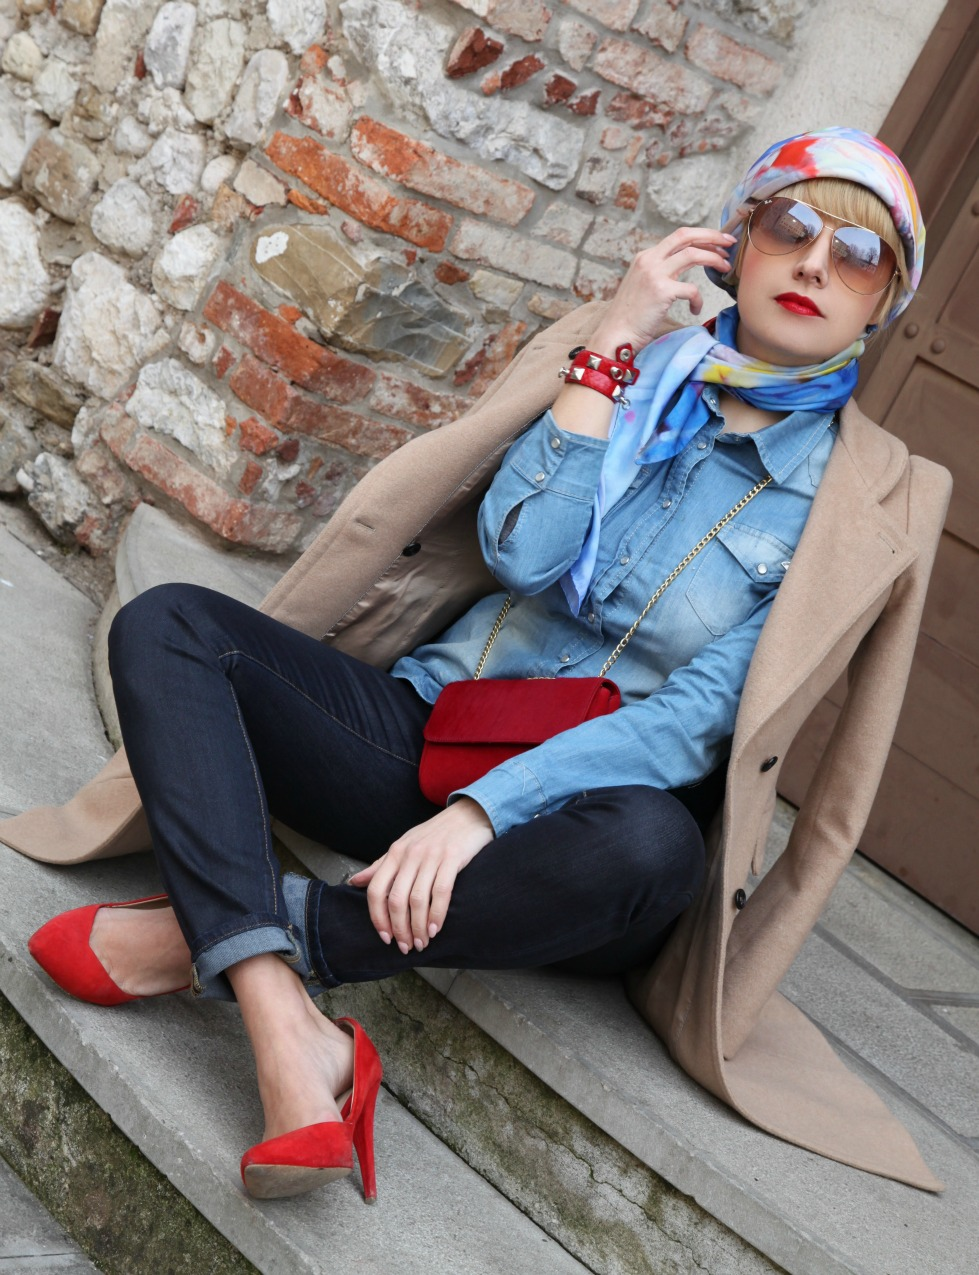 Style Corner: come indossare il foulard, alessia milanese, thechilicool, fashion blog, fashion blogger, quaranta locatelli foulard, a&a pelletteria